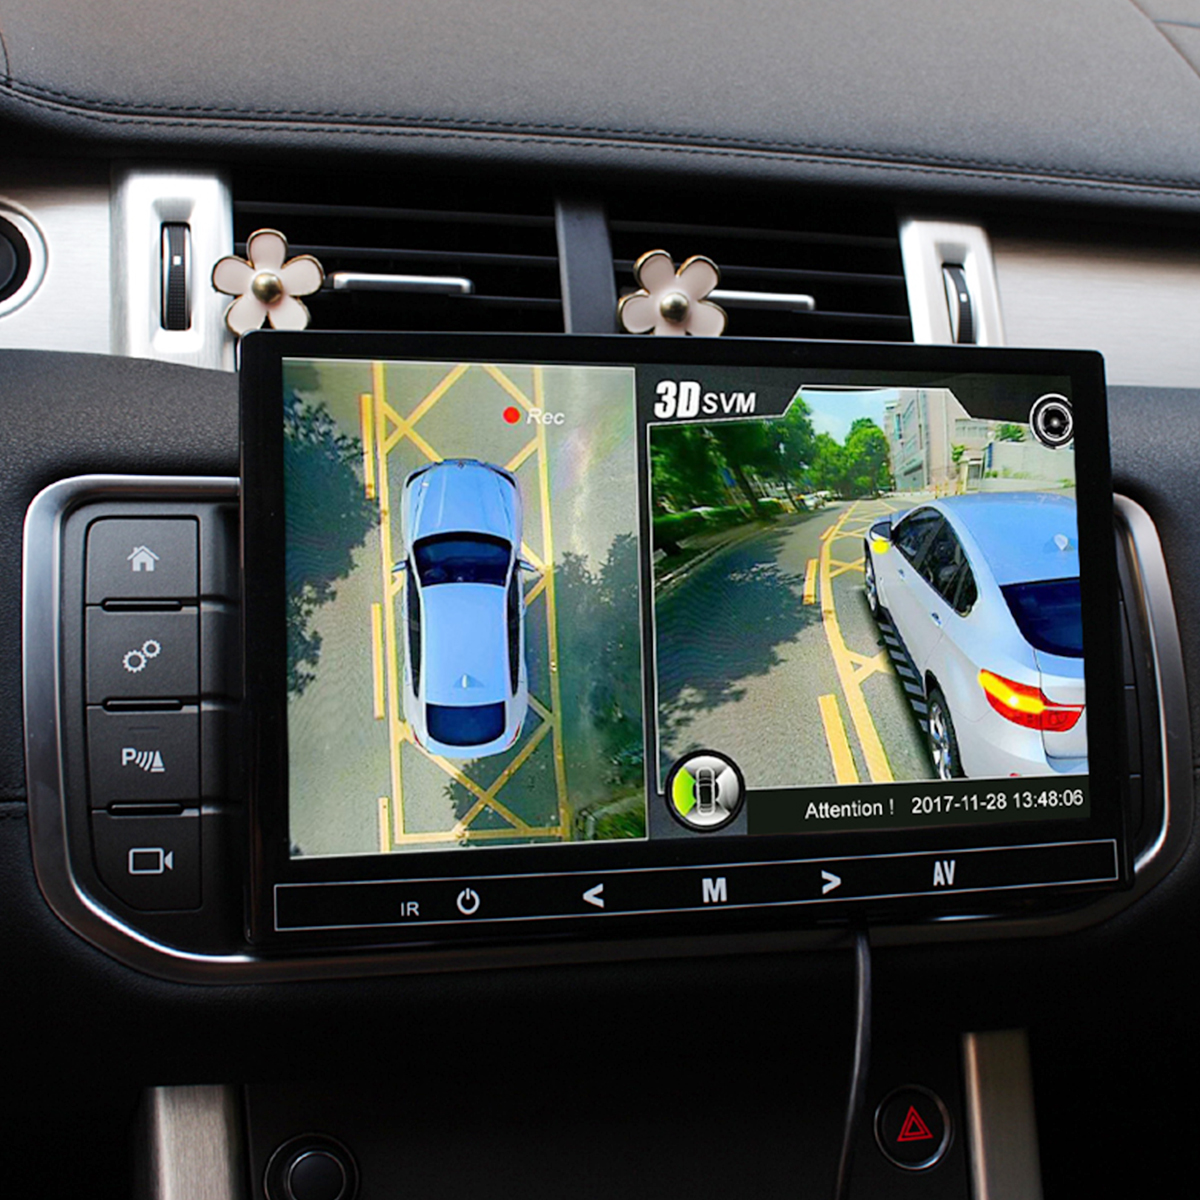 3D HD 360 Car Surround View Monitoring System Bird View System 4 Camera DVR HD 960P Recorder Parking Monitoring remote receiver